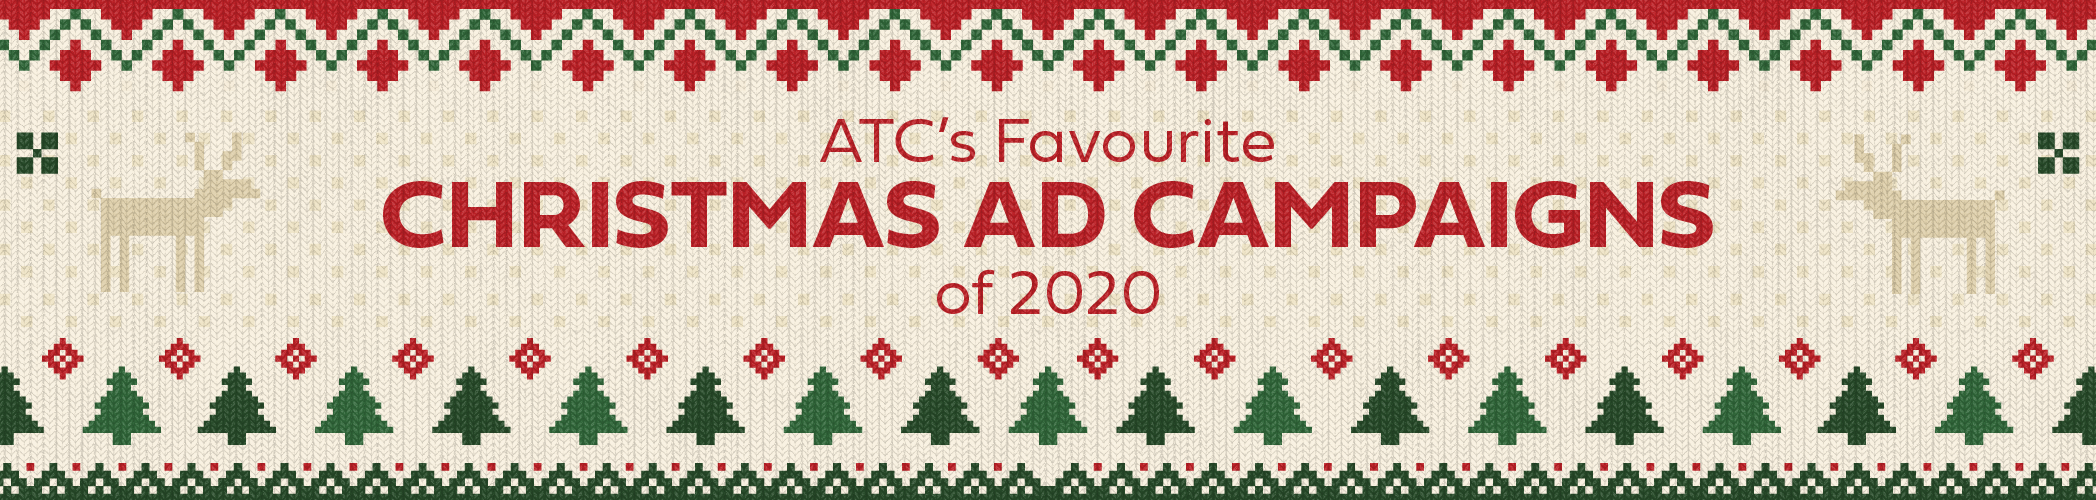 AT's Favourite Christmas Ad Campaigns of 2020